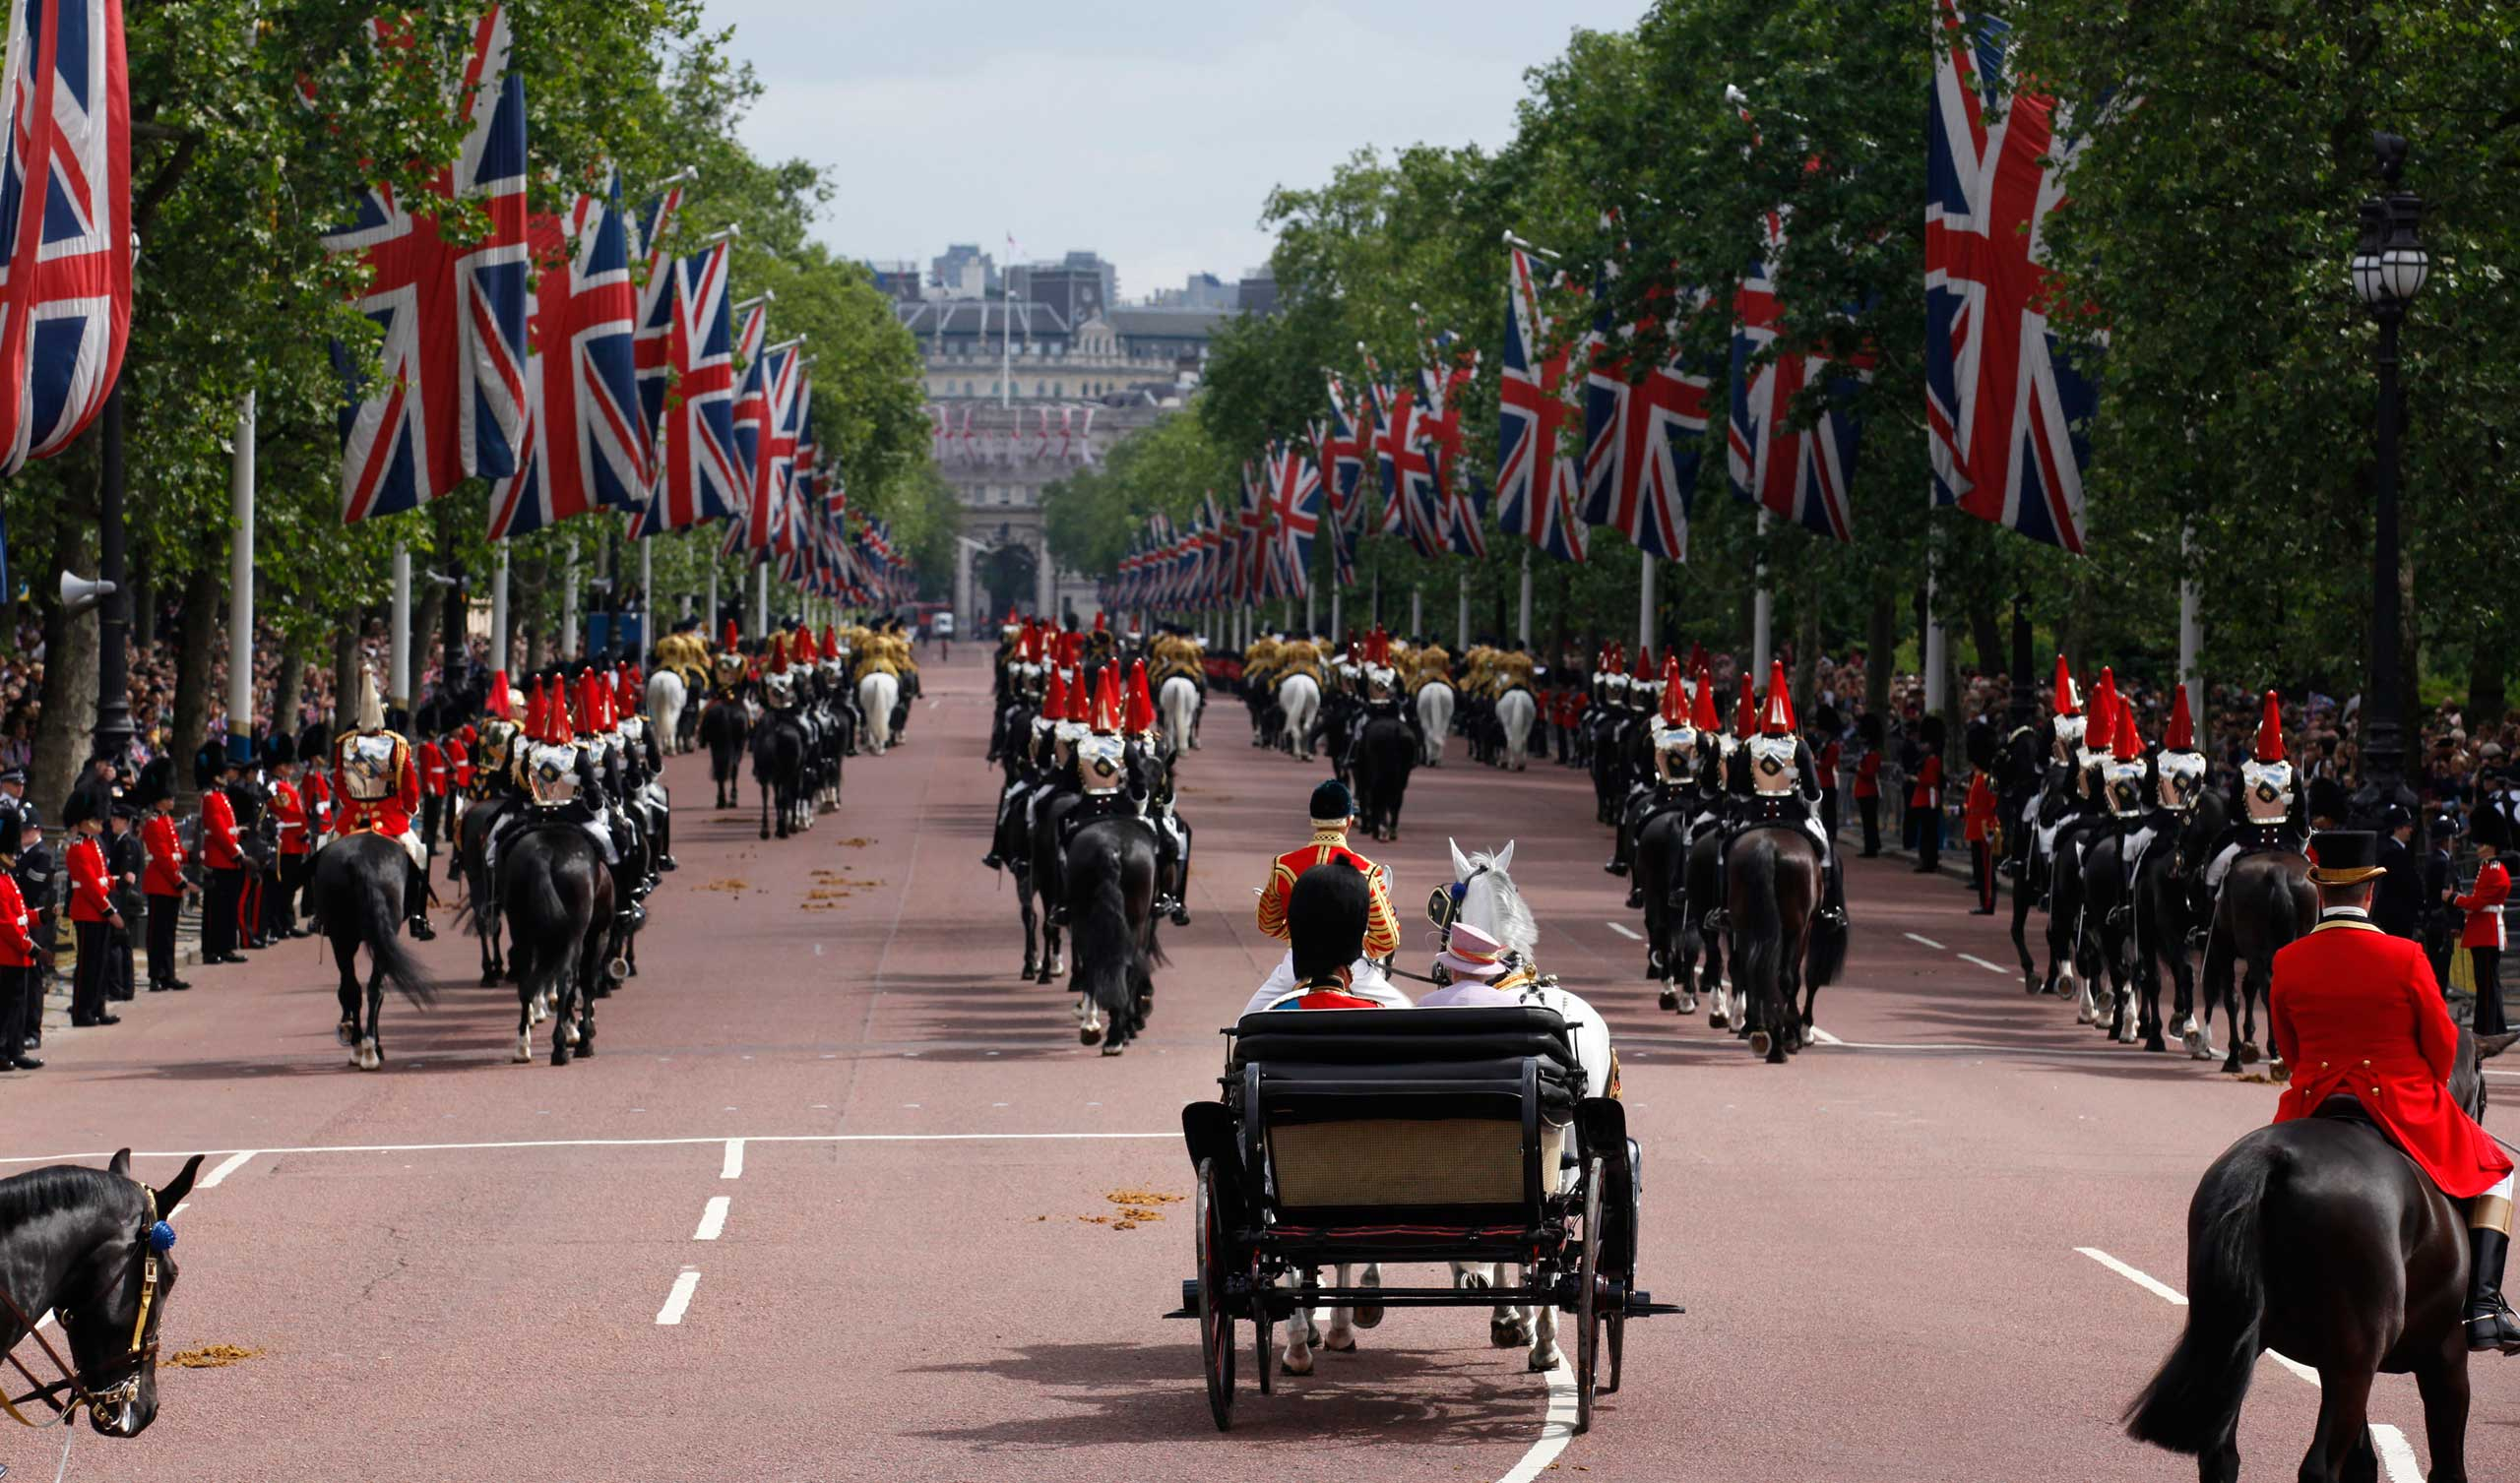 Queen Elizabeth II and Prince Philip leave Buckingham Palace to attend the Trooping the Colour ceremony in London to celebrate her official birthday in June 2010.